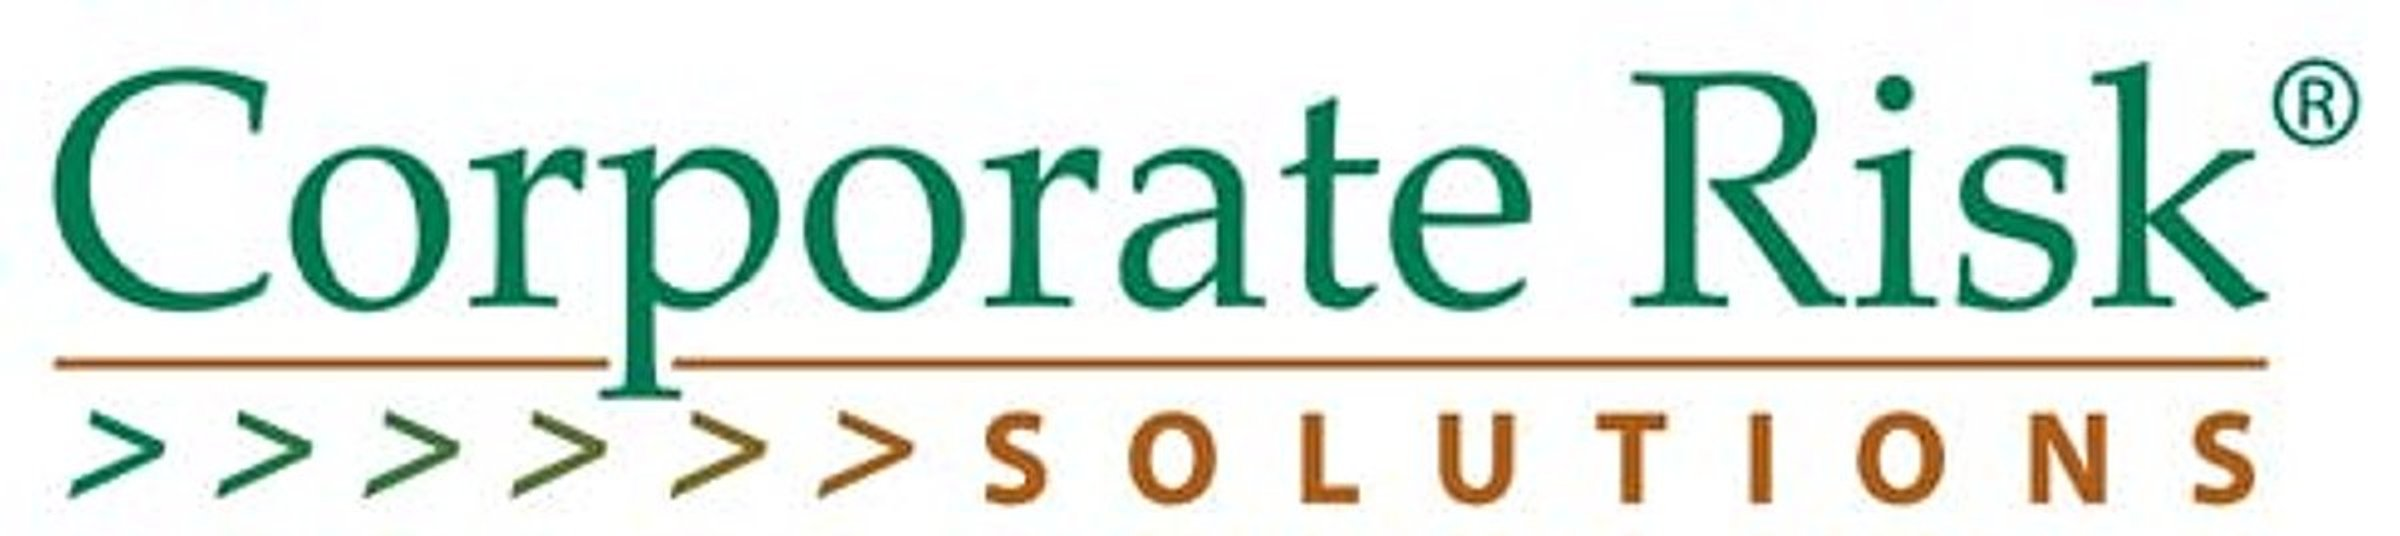 Corporate Risk Solutions, Inc.